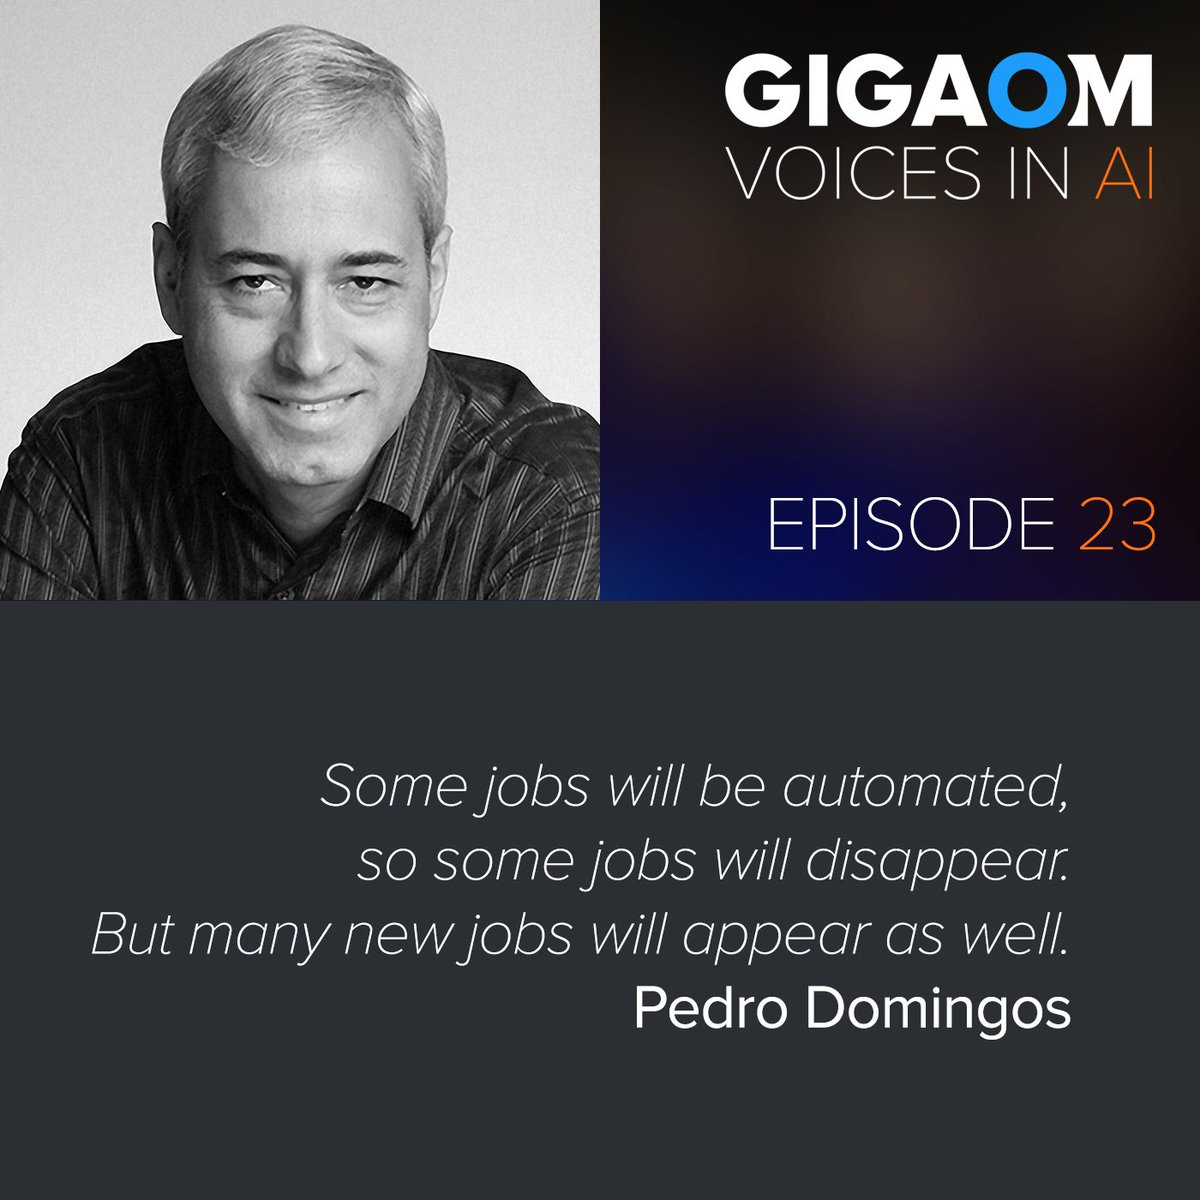 test Twitter Media - RT @VoicesinAI: Pedro Domingos talks w/@byronreese about #artificialintelligence #consciousness the #masteralgorithm and #machinecreativity on this #AI podcast by @Gigaom - @pmddomingos https://t.co/YOm4iowXeW…h-pedro-domingos/ https://t.co/Xusxi8lsPg